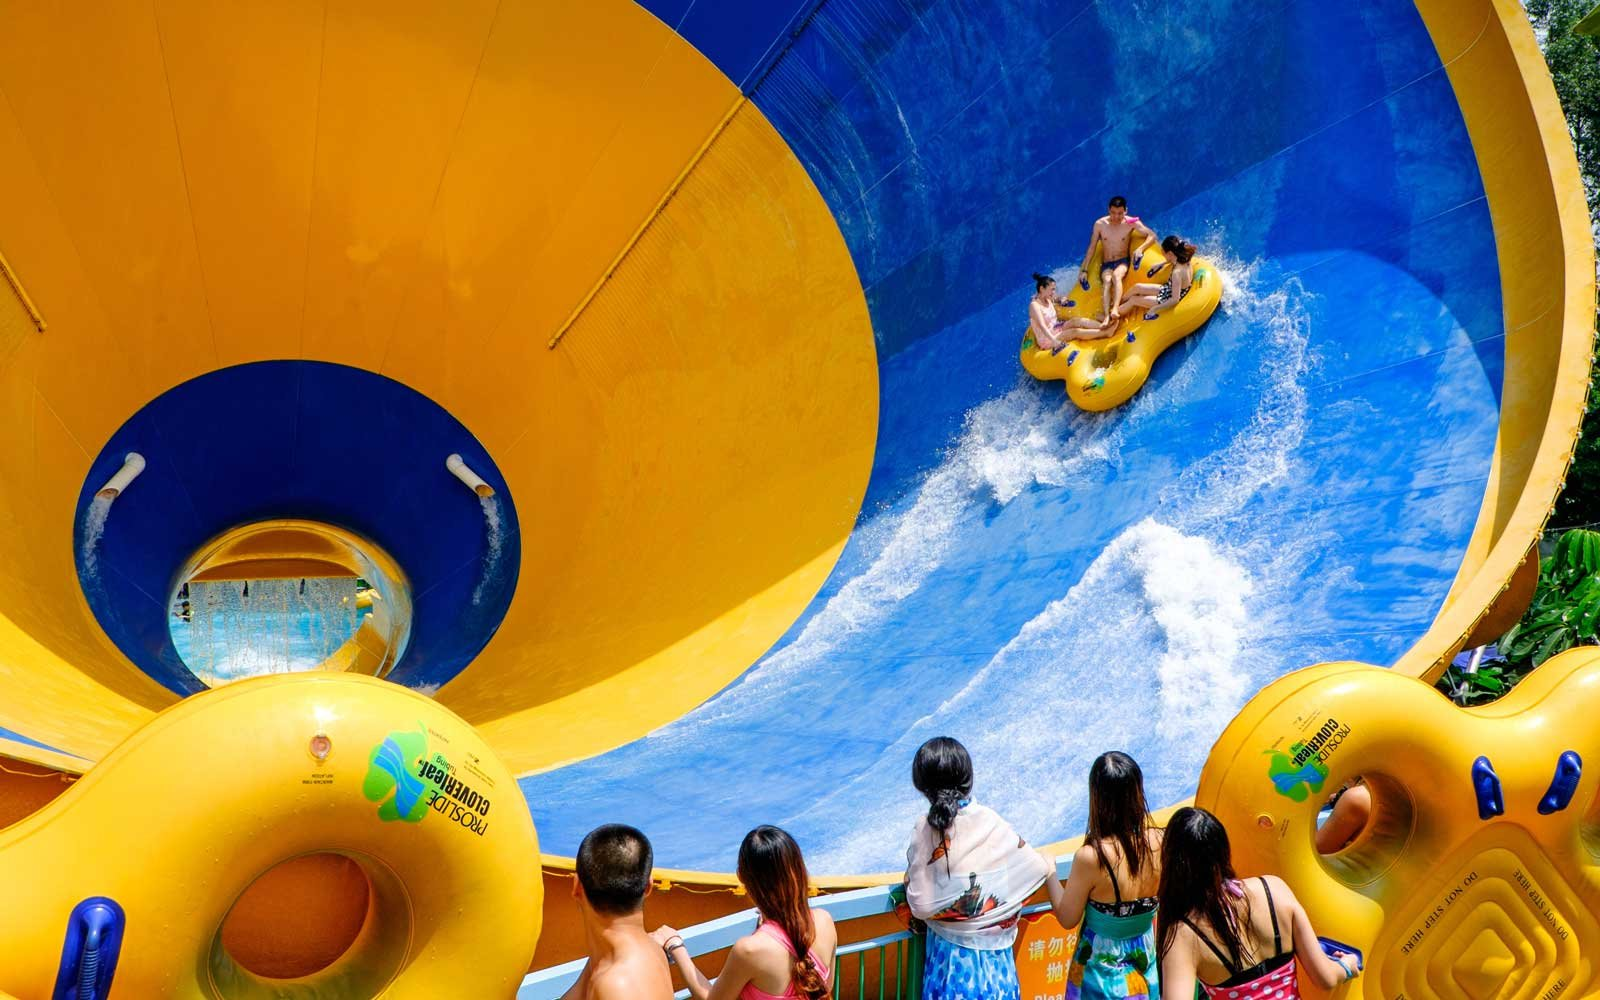 Tornado — Chimelong Water Park, China